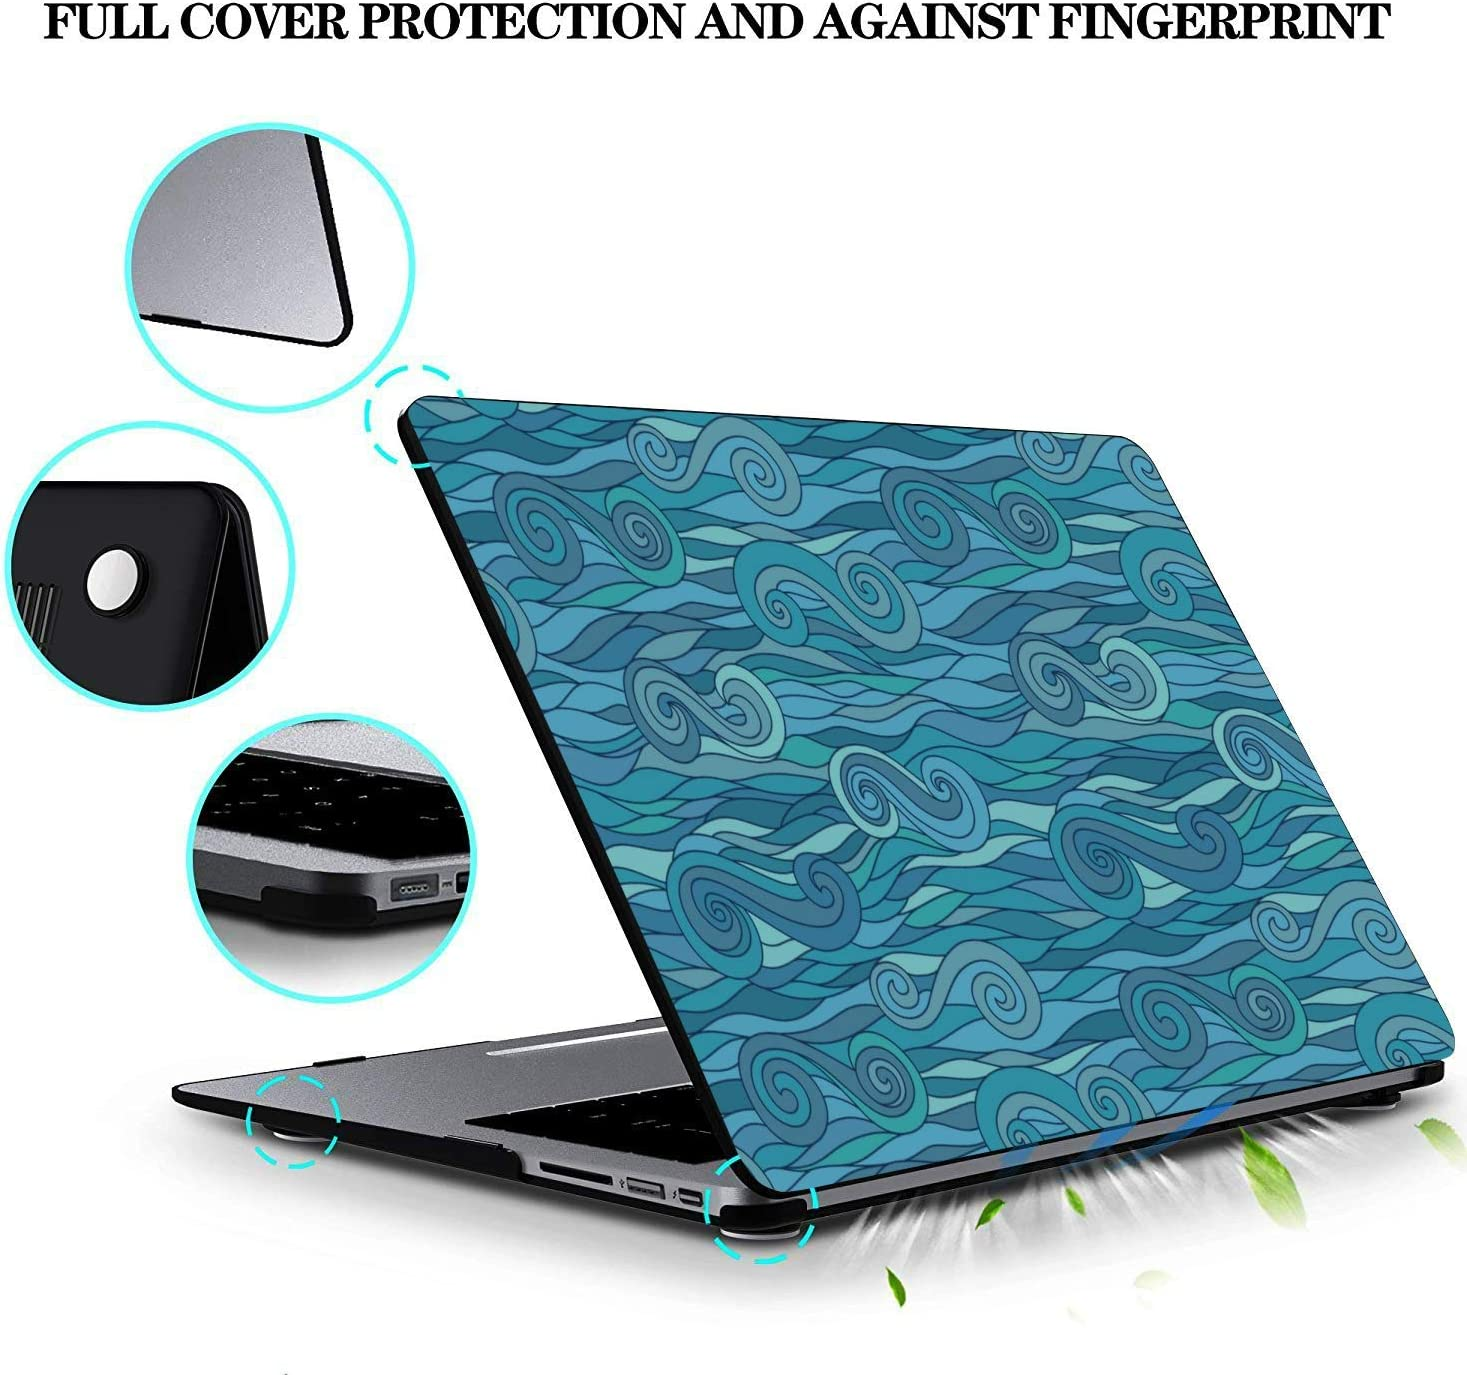 Cover for Laptop Sea Creatures Ornamental Fish Squid Plastic Hard Shell Compatible Mac Air 11 Pro 13 15 MacBook Pro Laptop Cover Protection for MacBook 2016-2019 Version